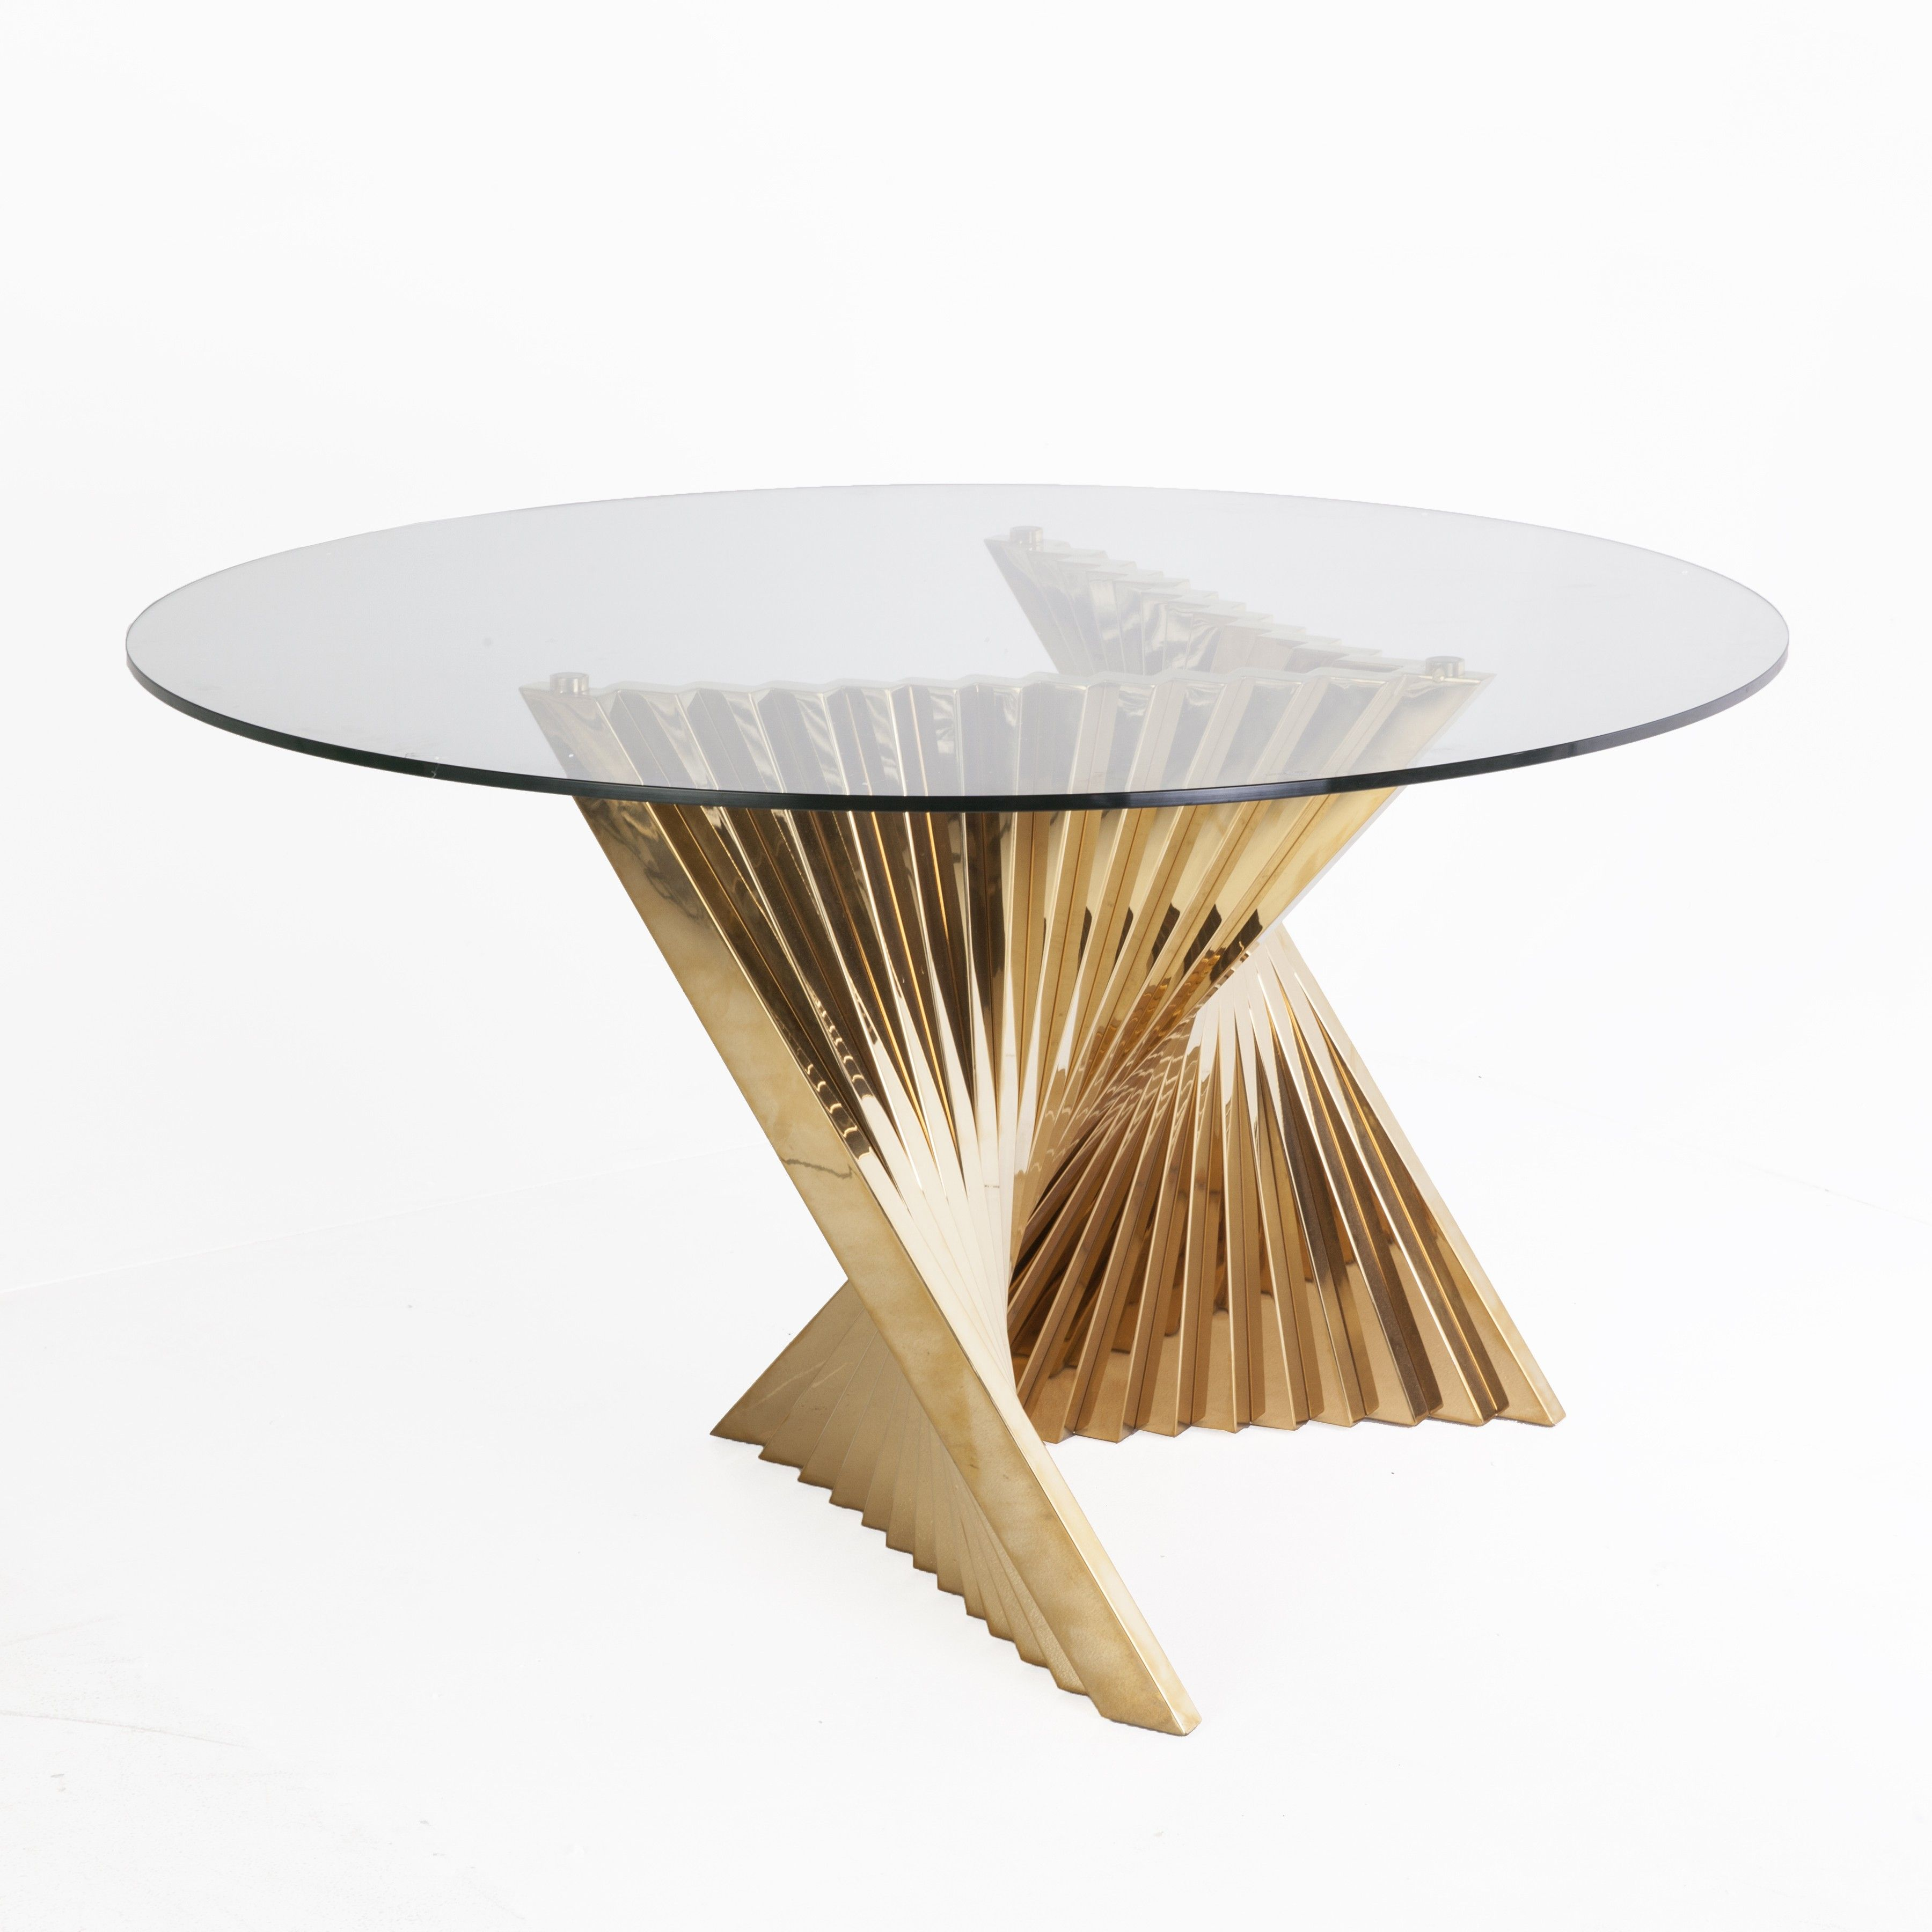 Tertrud Dining Table Gold Metal Dining Table With Round Glass Top Http Www Franceandson Com Tertru Dining Table Gold Dining Table Gold Metal Dining Table